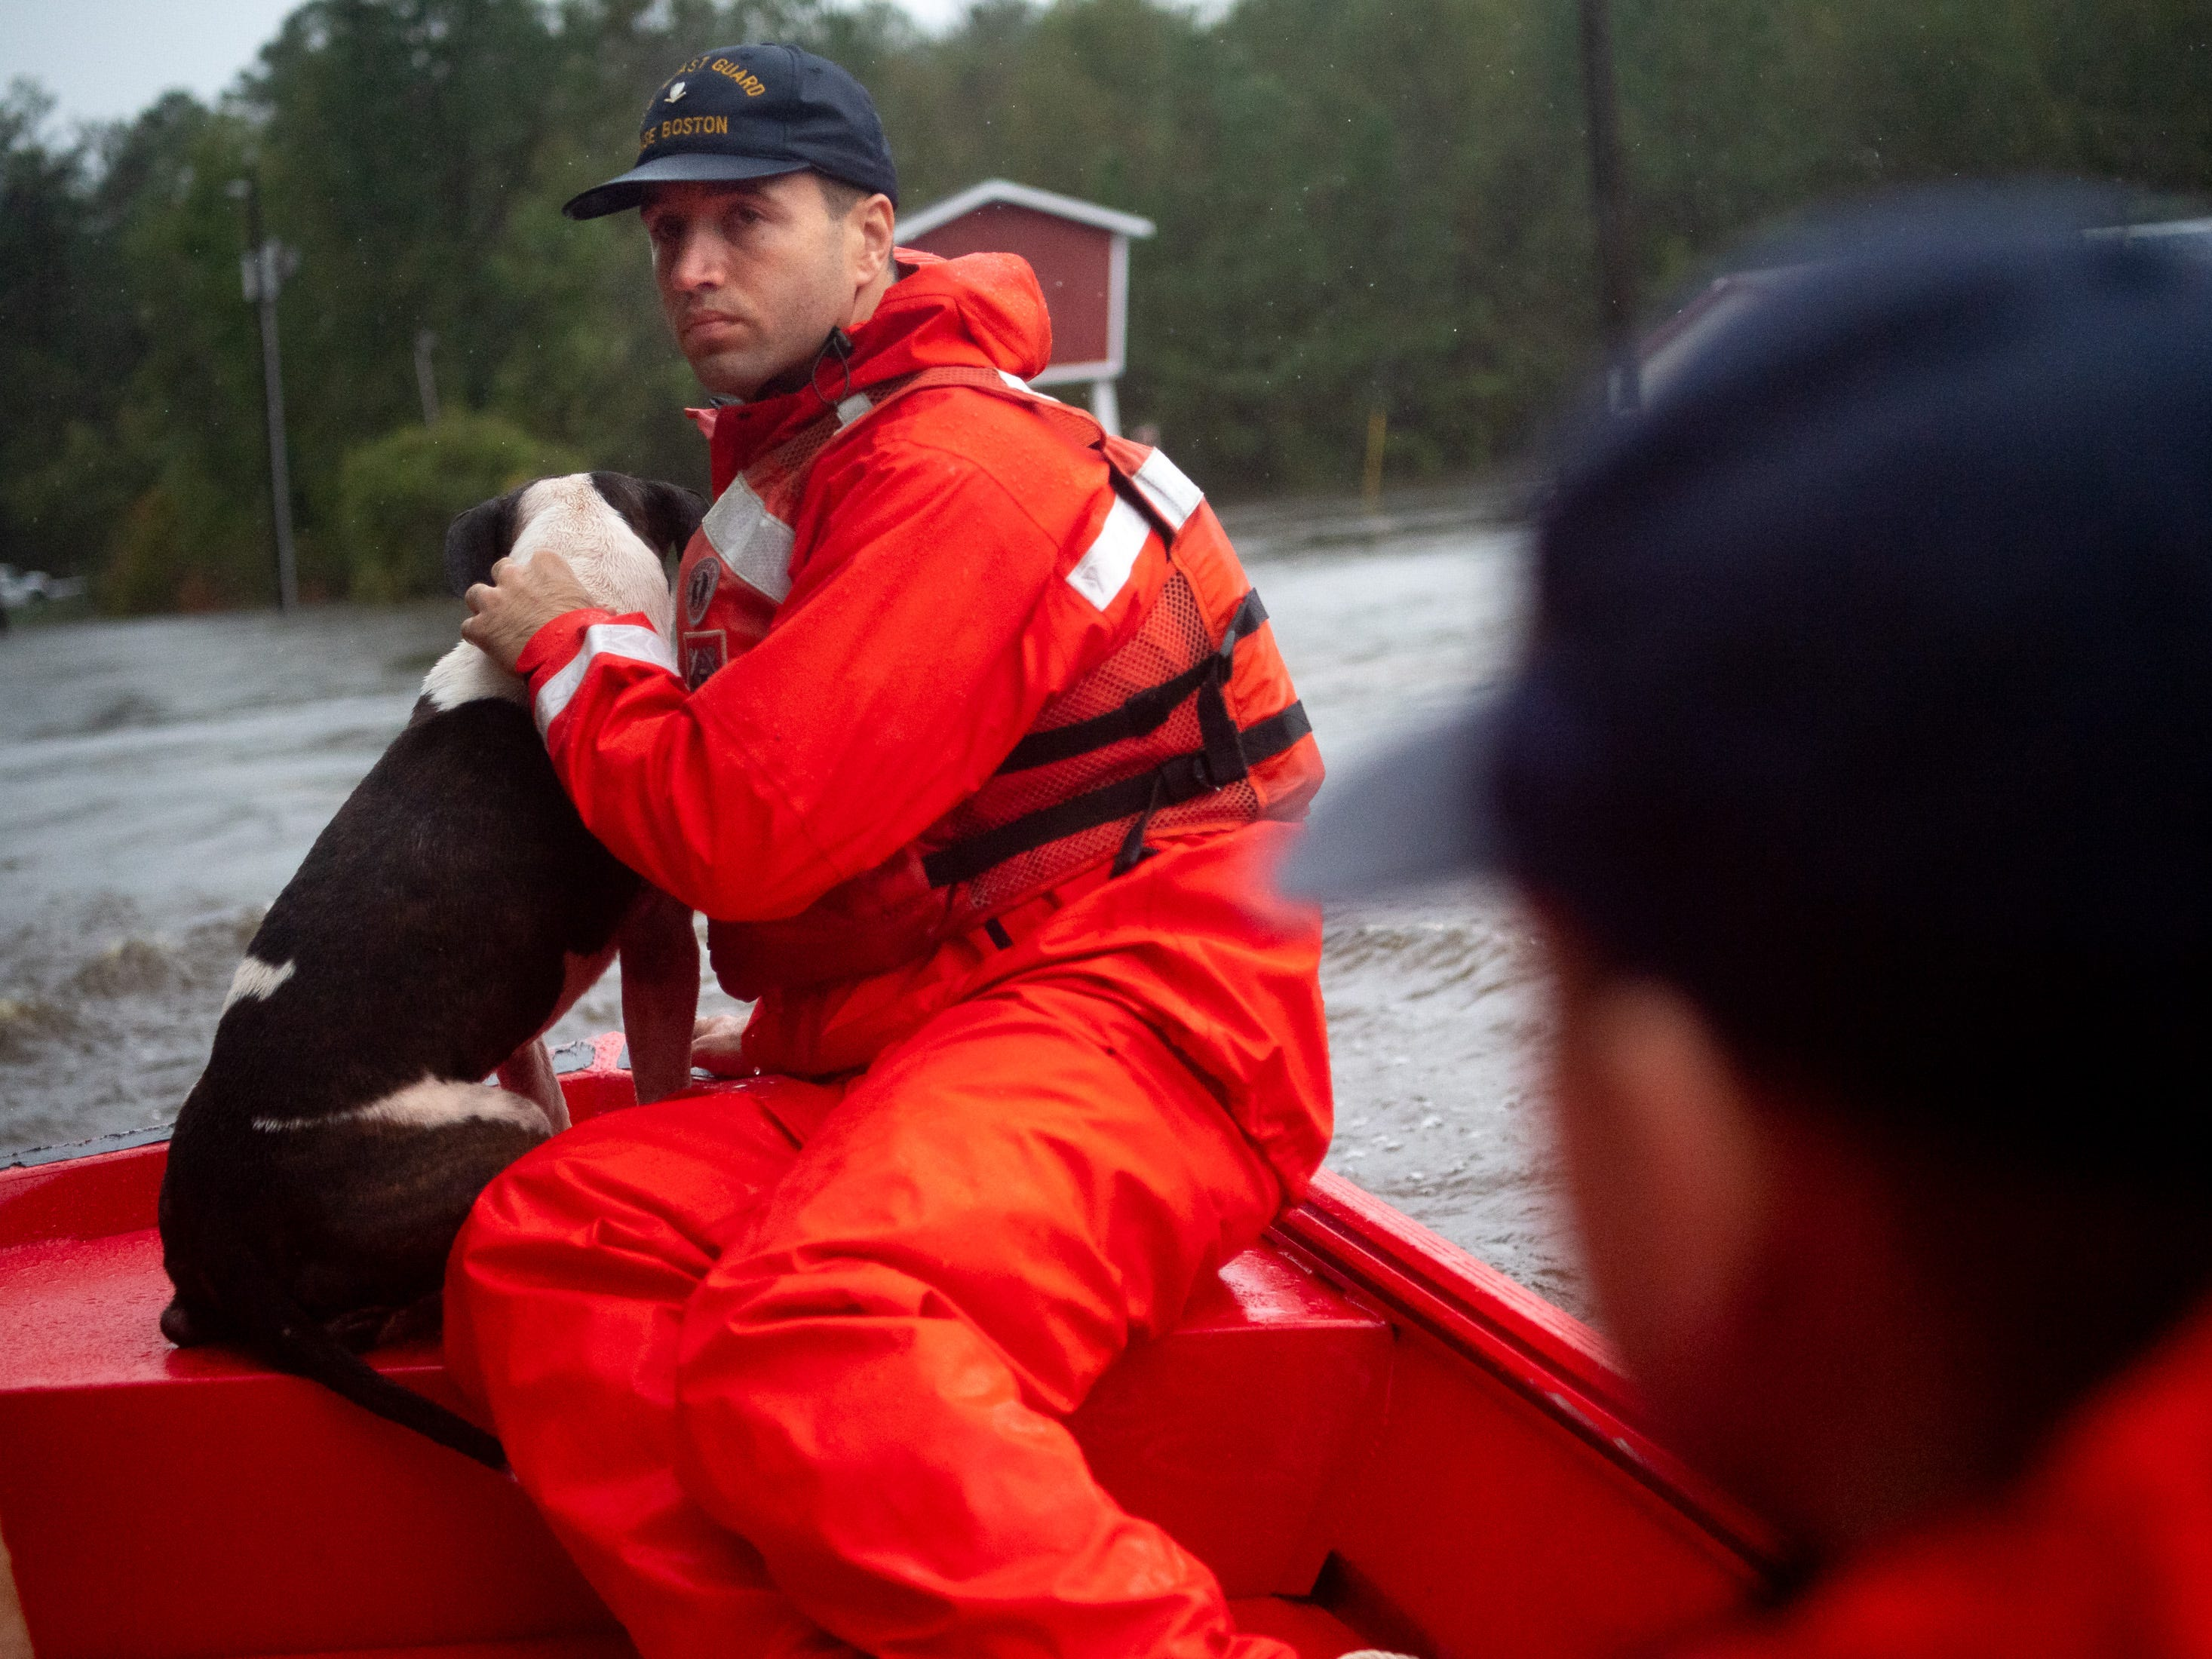 Coast Guard SK3 Mitchell Moretti, of Boston, Mass., helps rescue one of fourteen dogs from a flooded home in Columbus County, N.C., Sunday, Sept. 16, 2018.